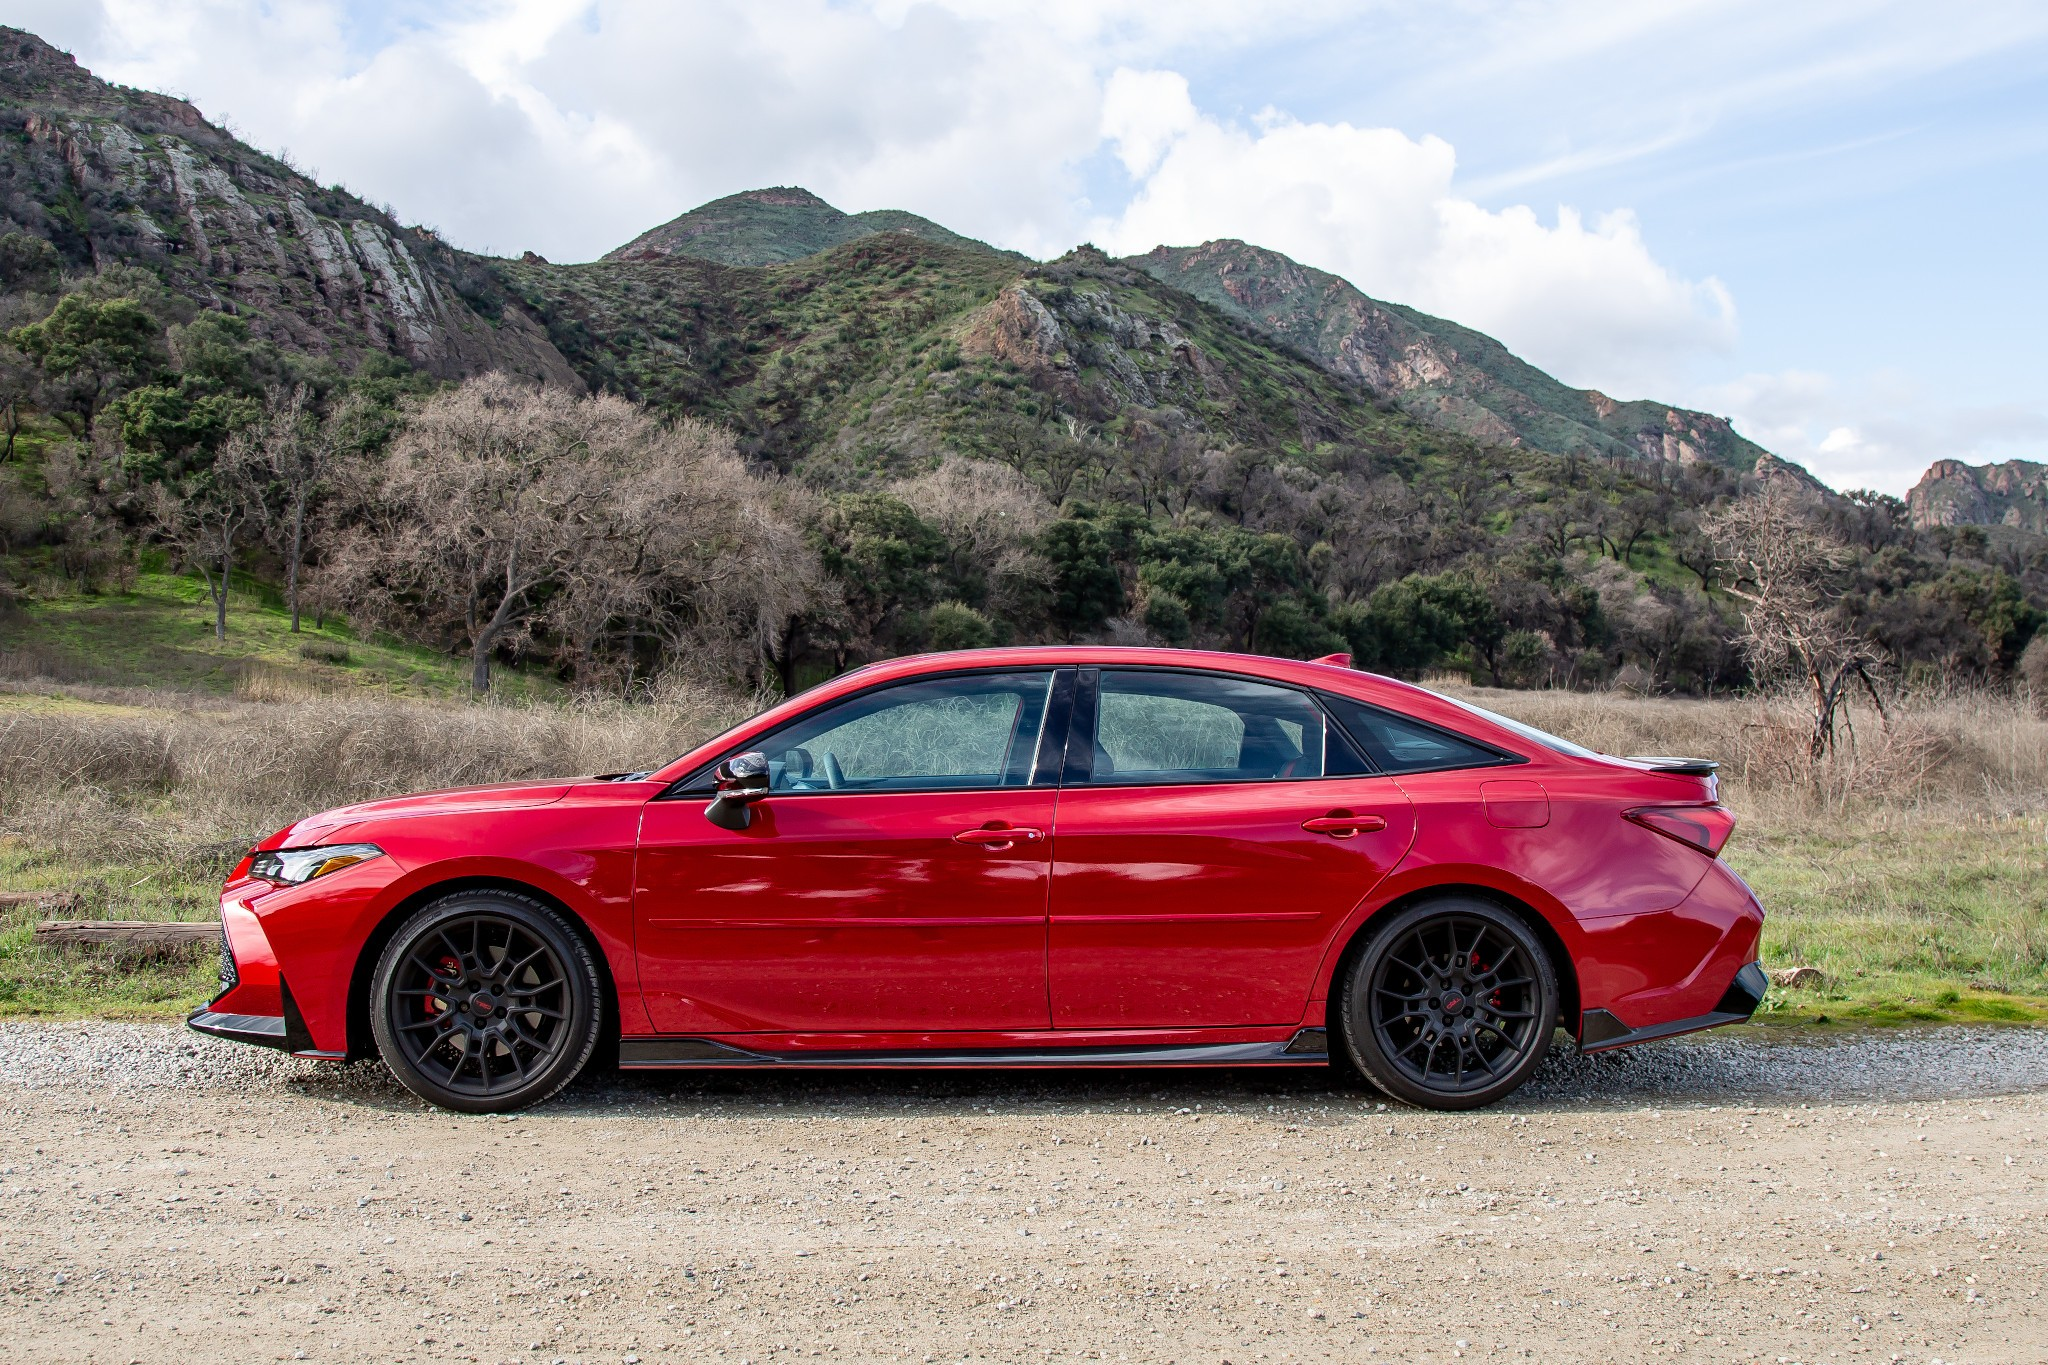 2020 Toyota Avalon TRD: This Is a Thing?